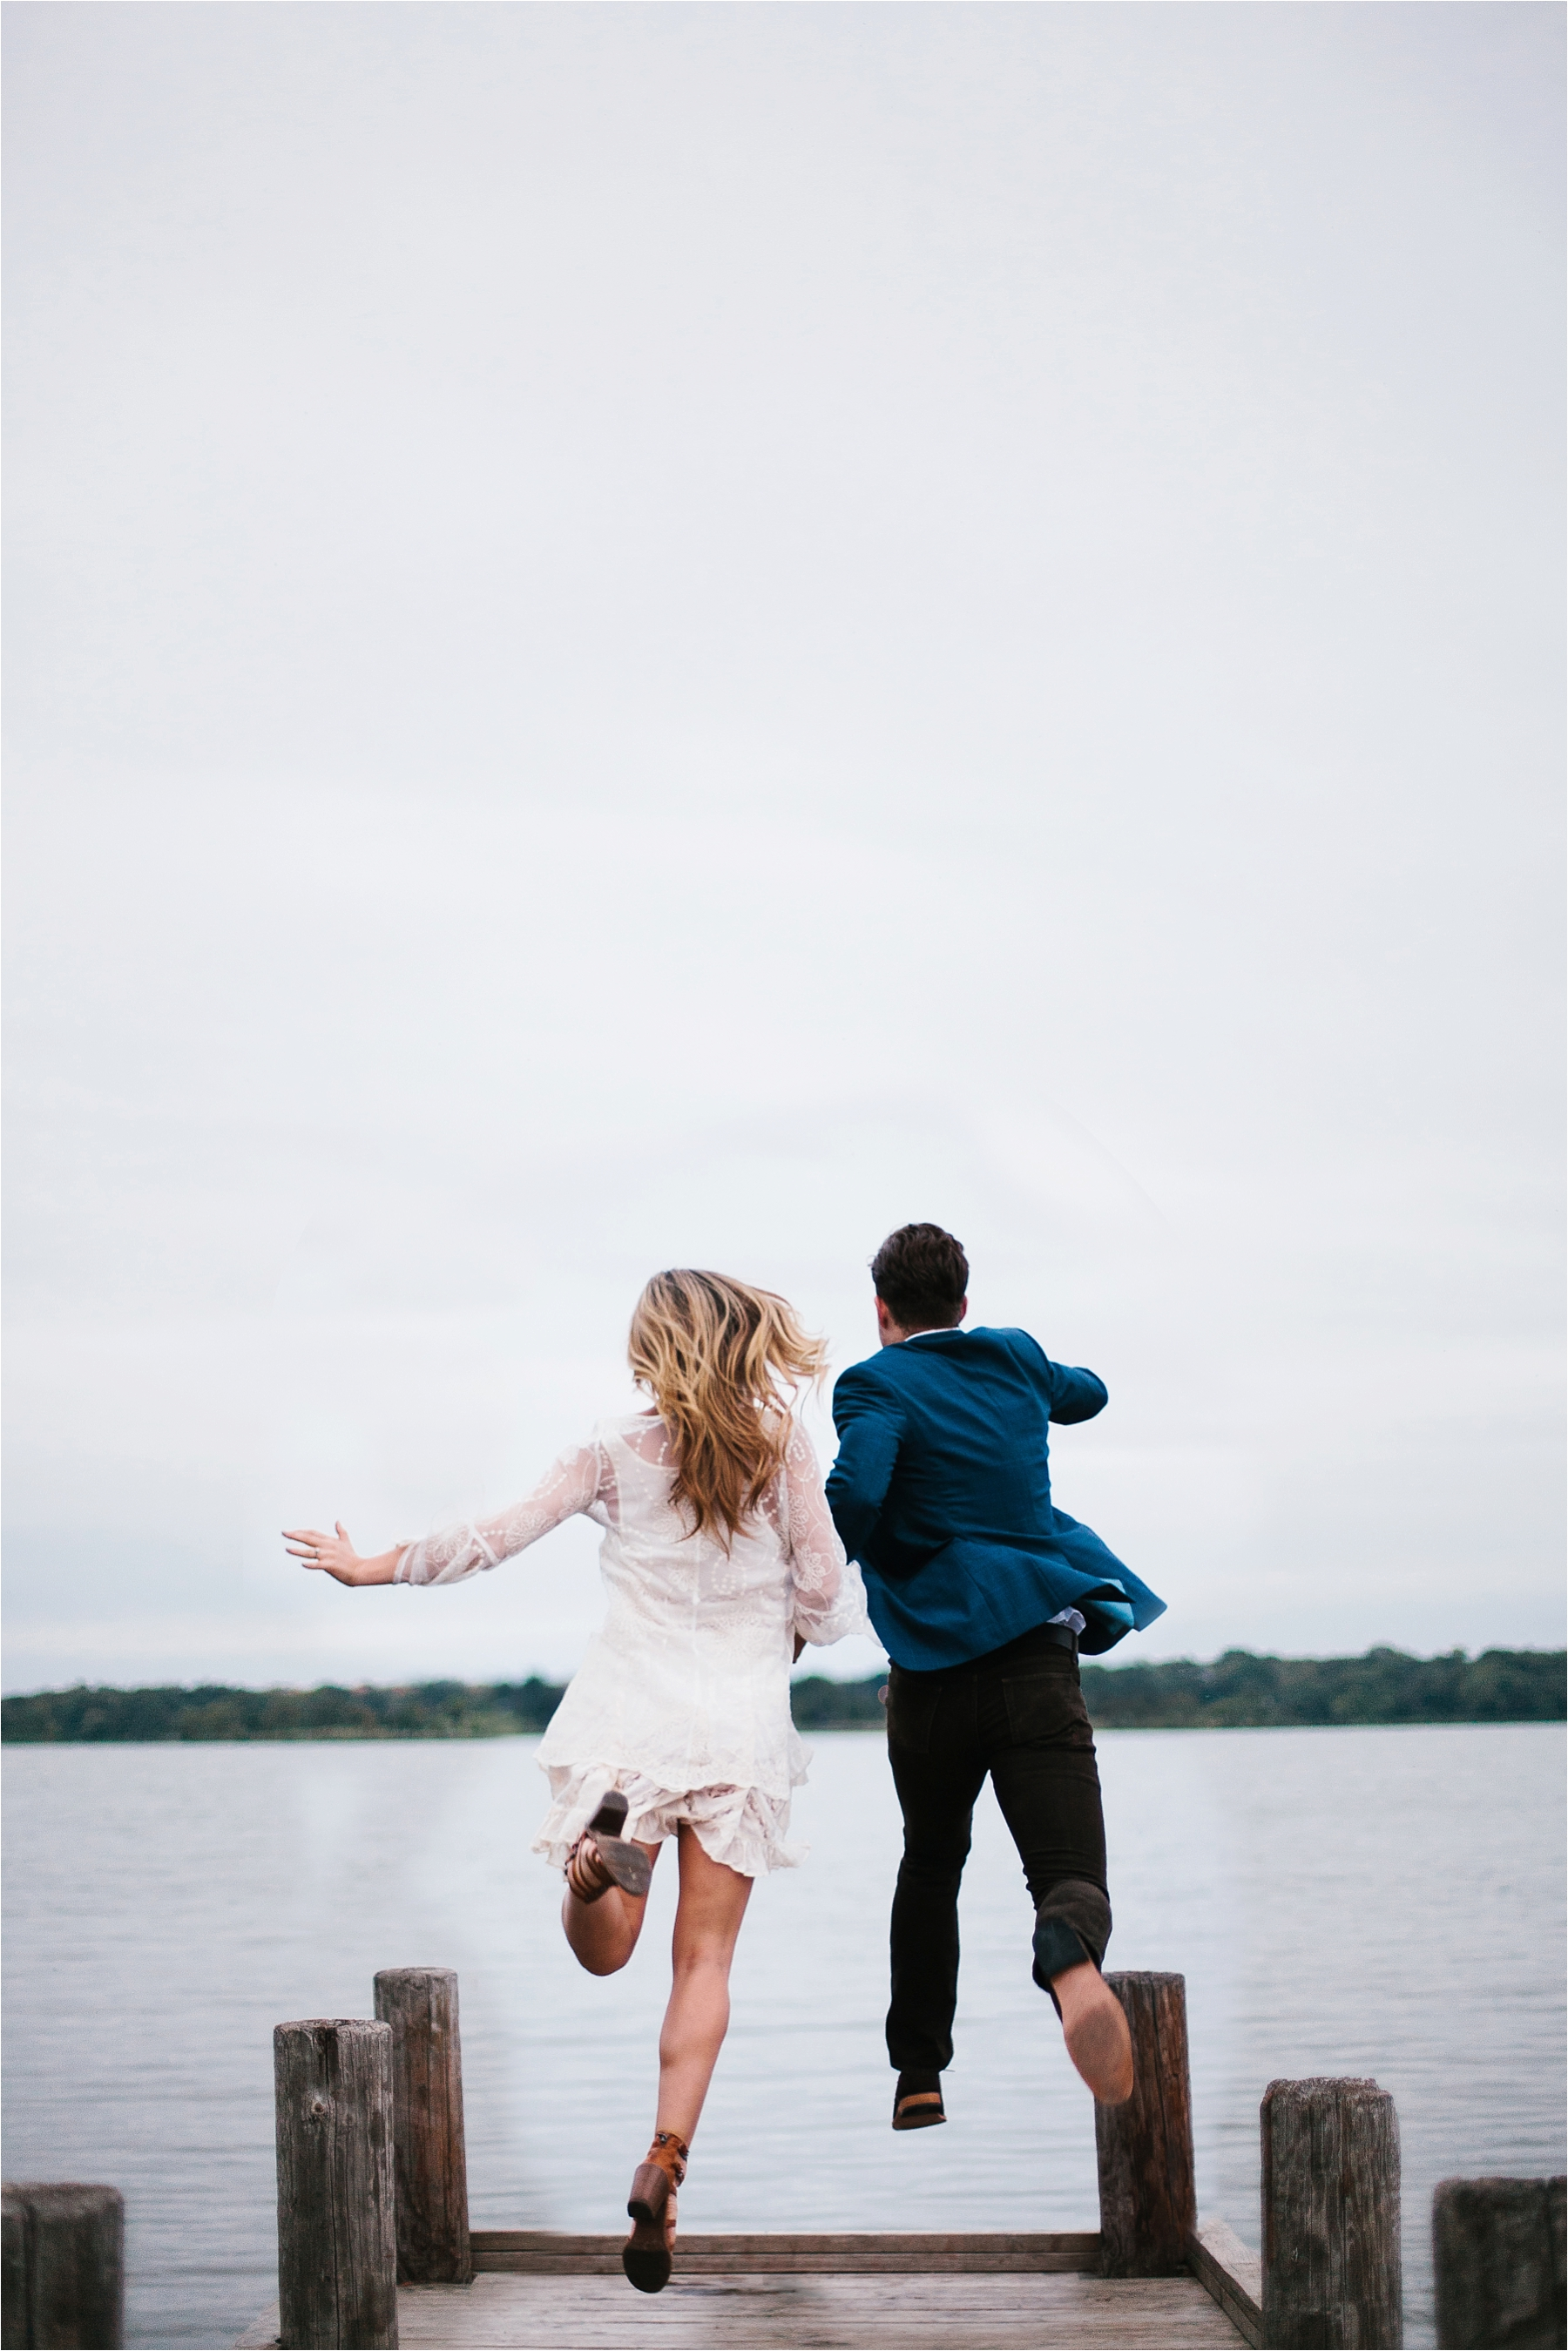 David  Mikayla  a colorful romantic ethereal engagement session in Dallas TX  Rachel